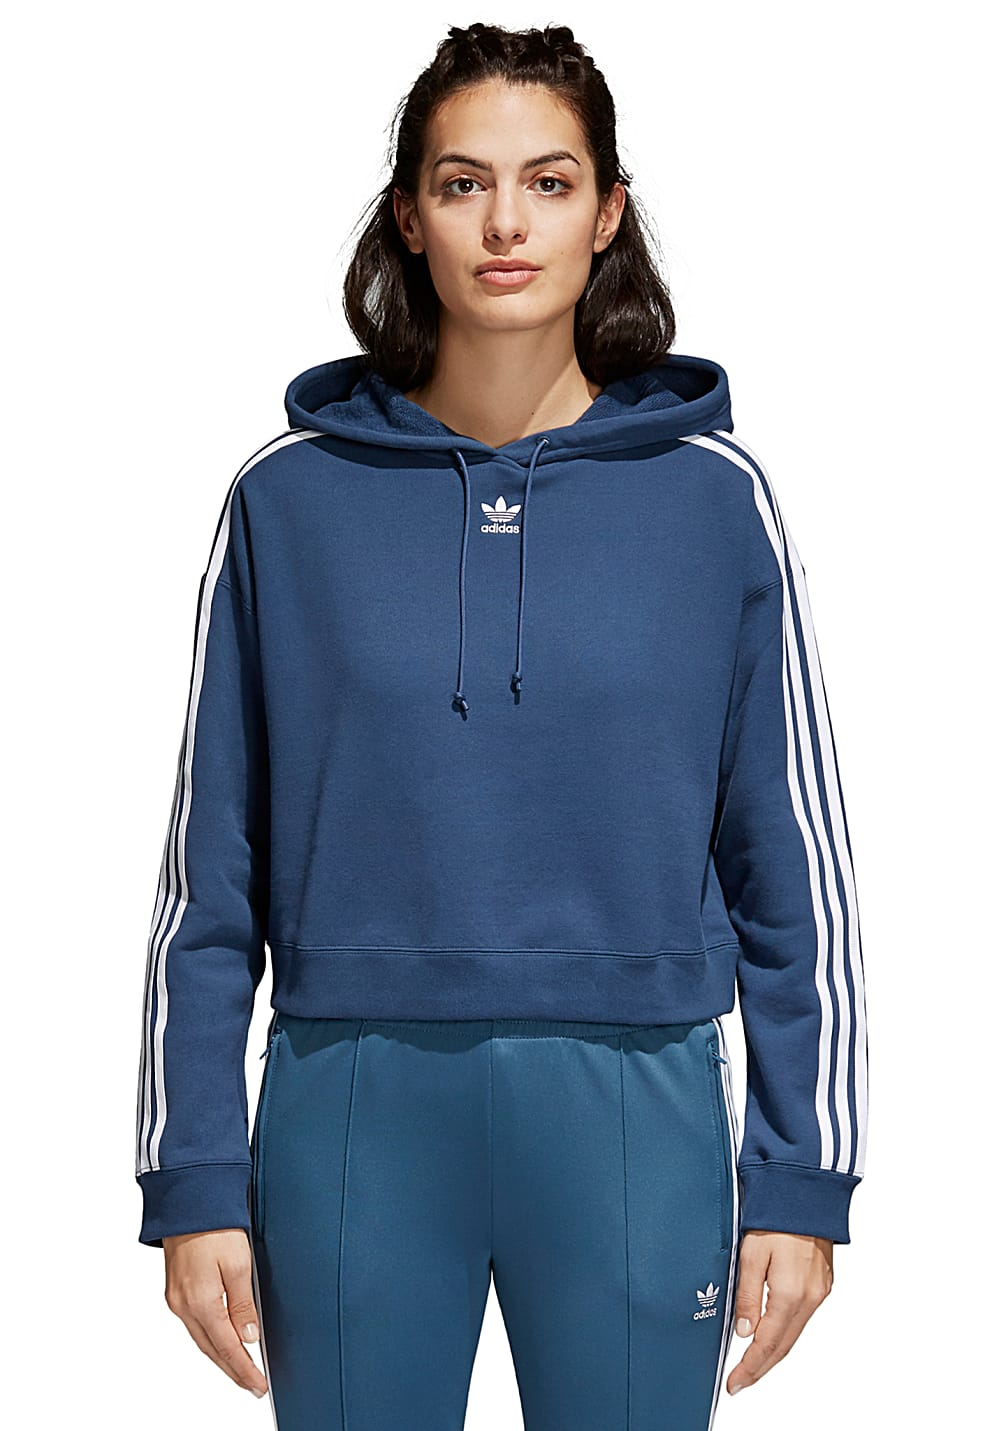 ADIDAS ORIGINALS Cropped Hooded Sweatshirt for Women Blue